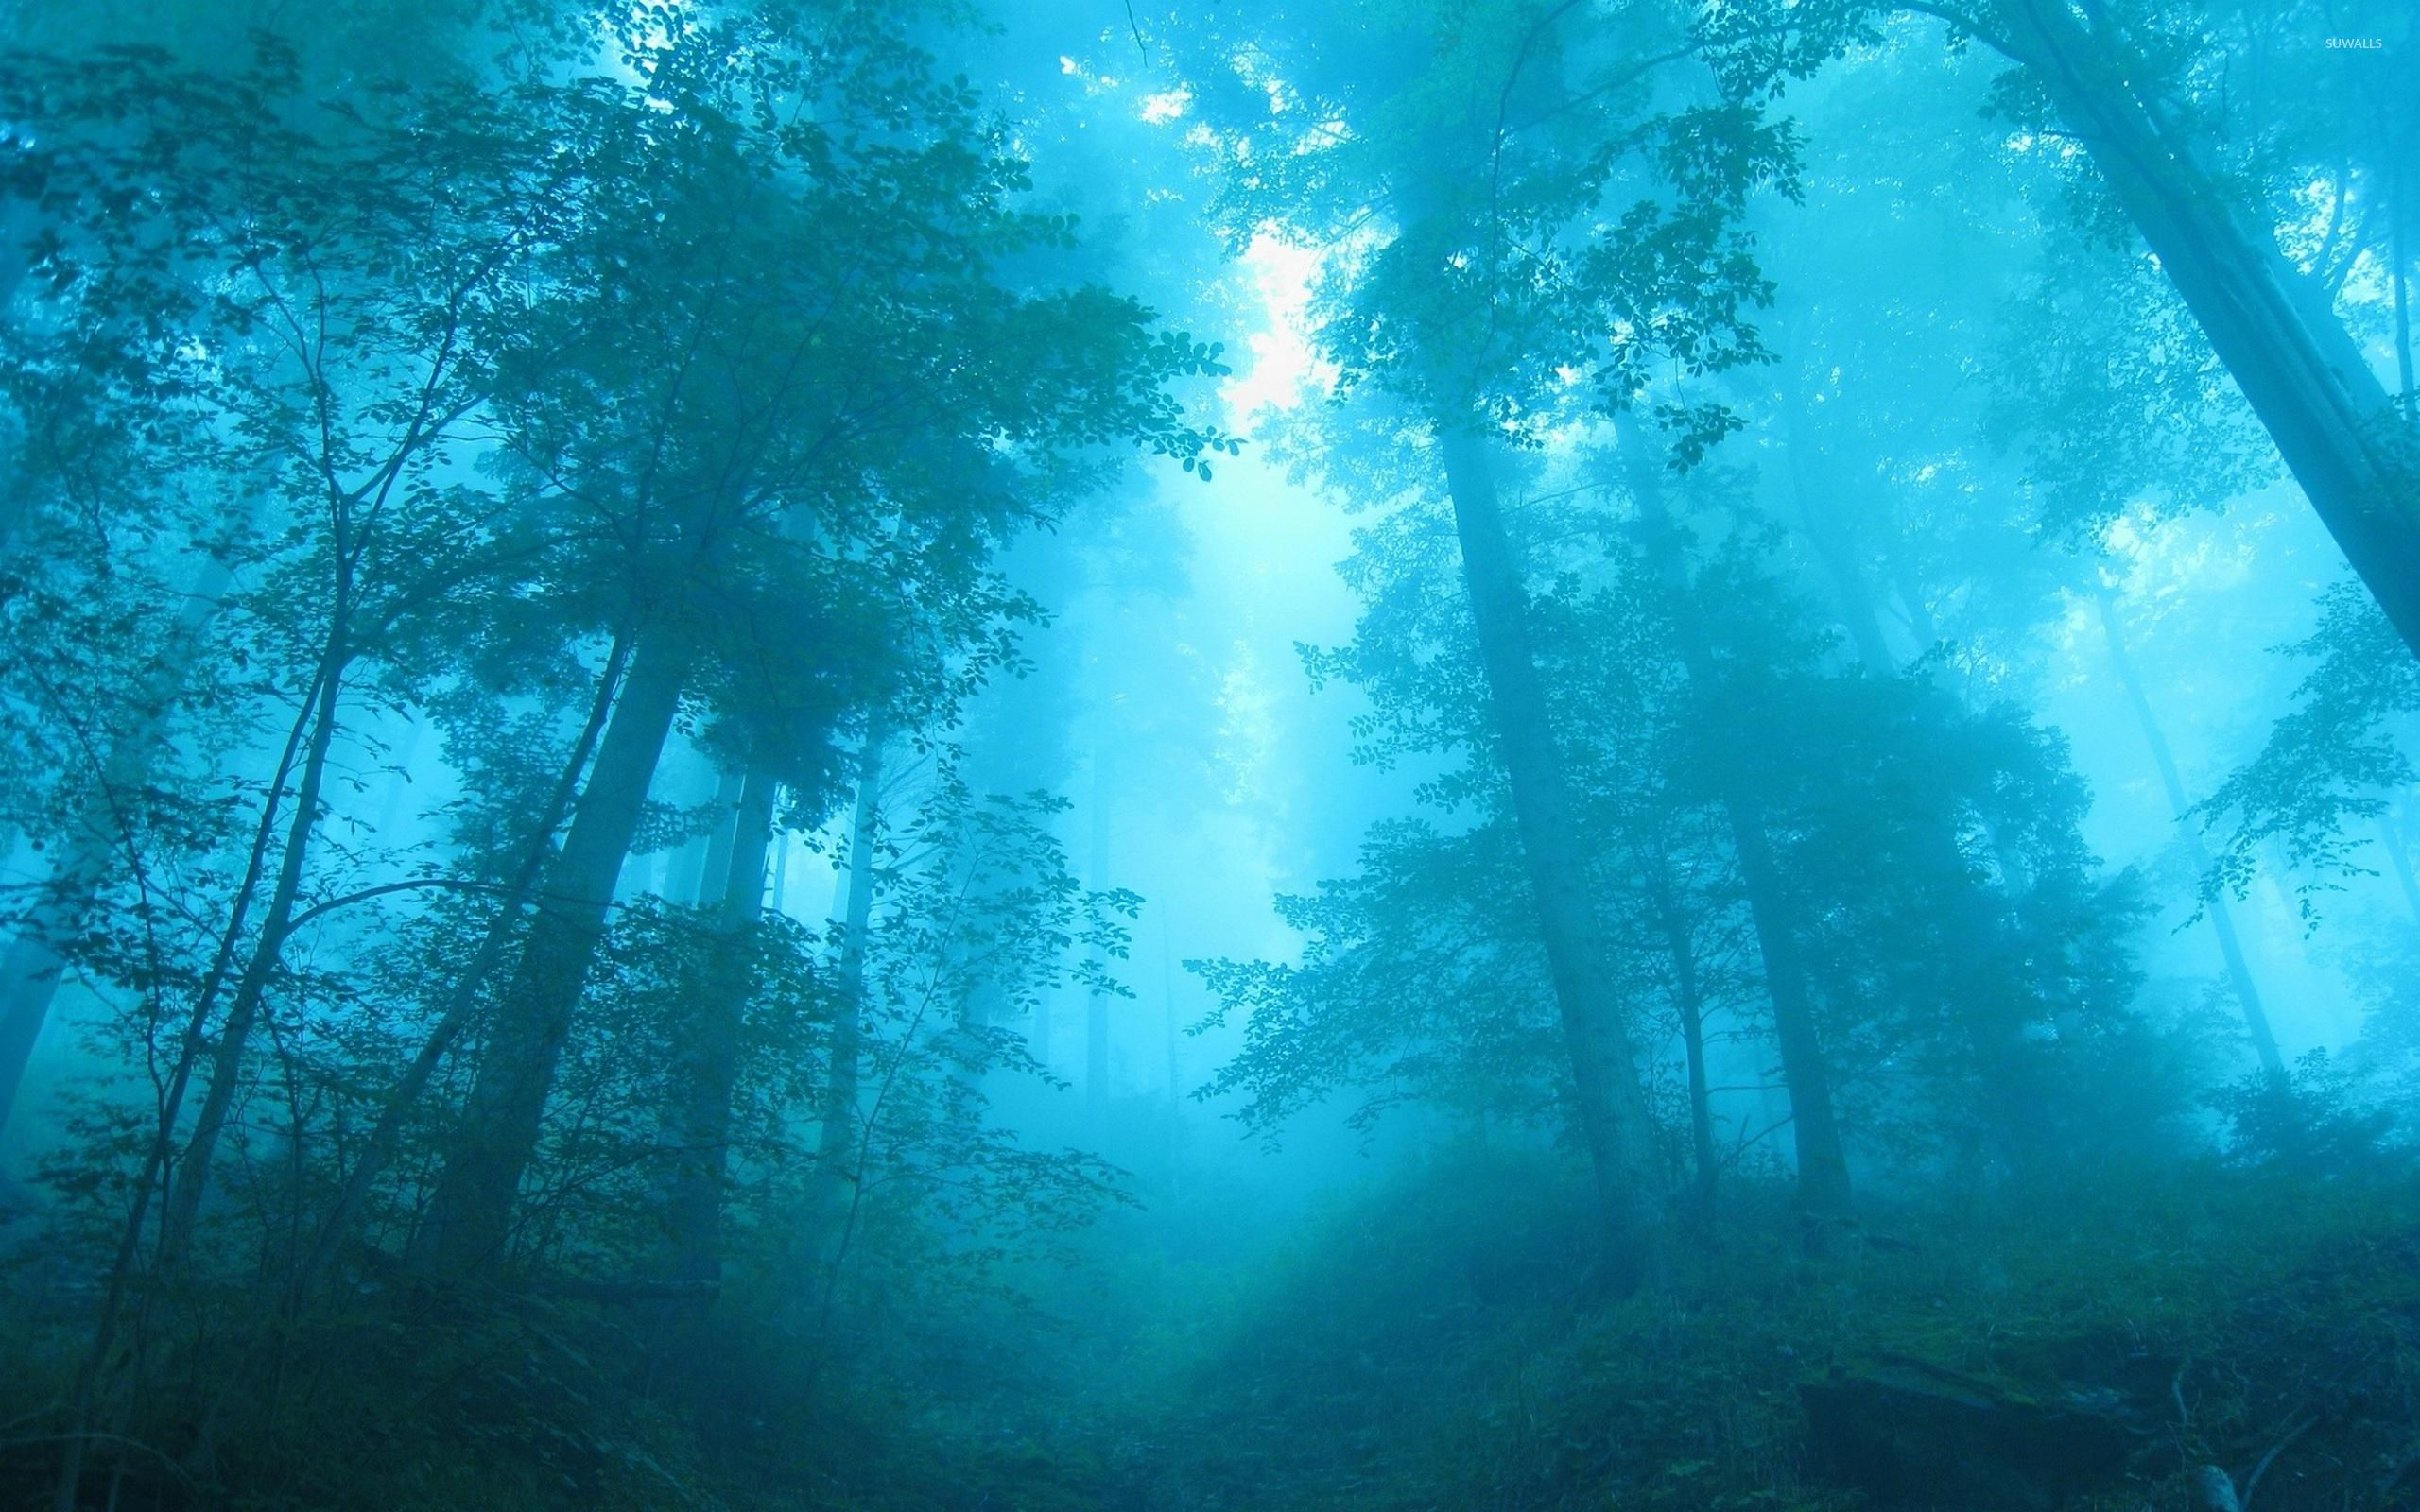 Blue light in the foggy forest wallpaper   Nature wallpapers   28689 1680x1050